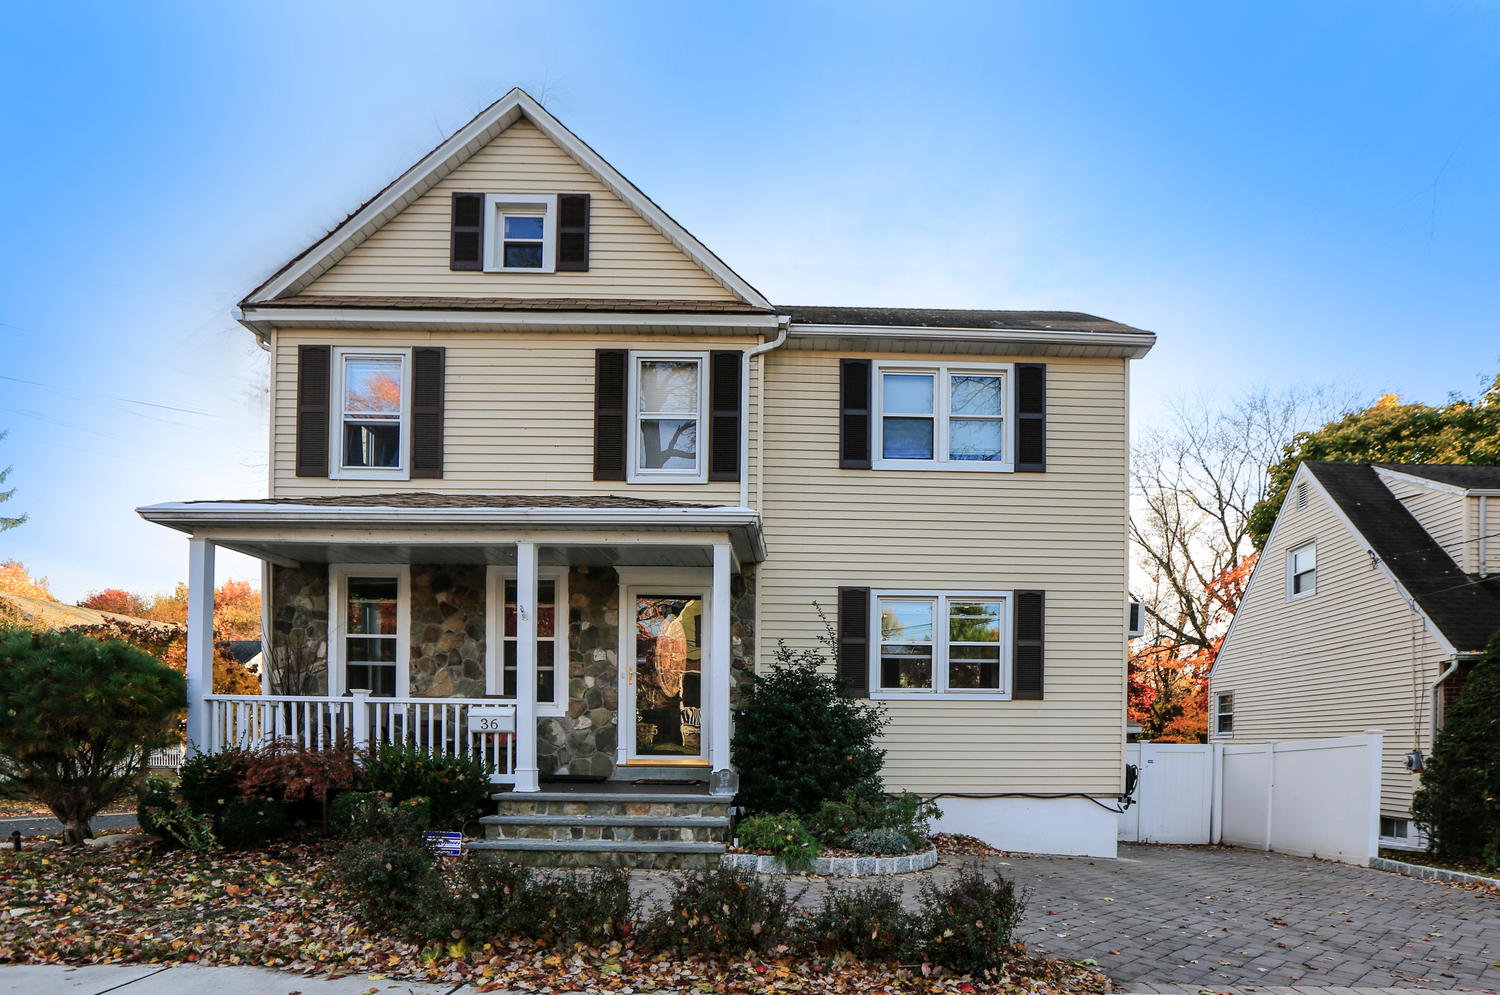 36 Pleasant Ave, Bergenfield, New Jersey 07621